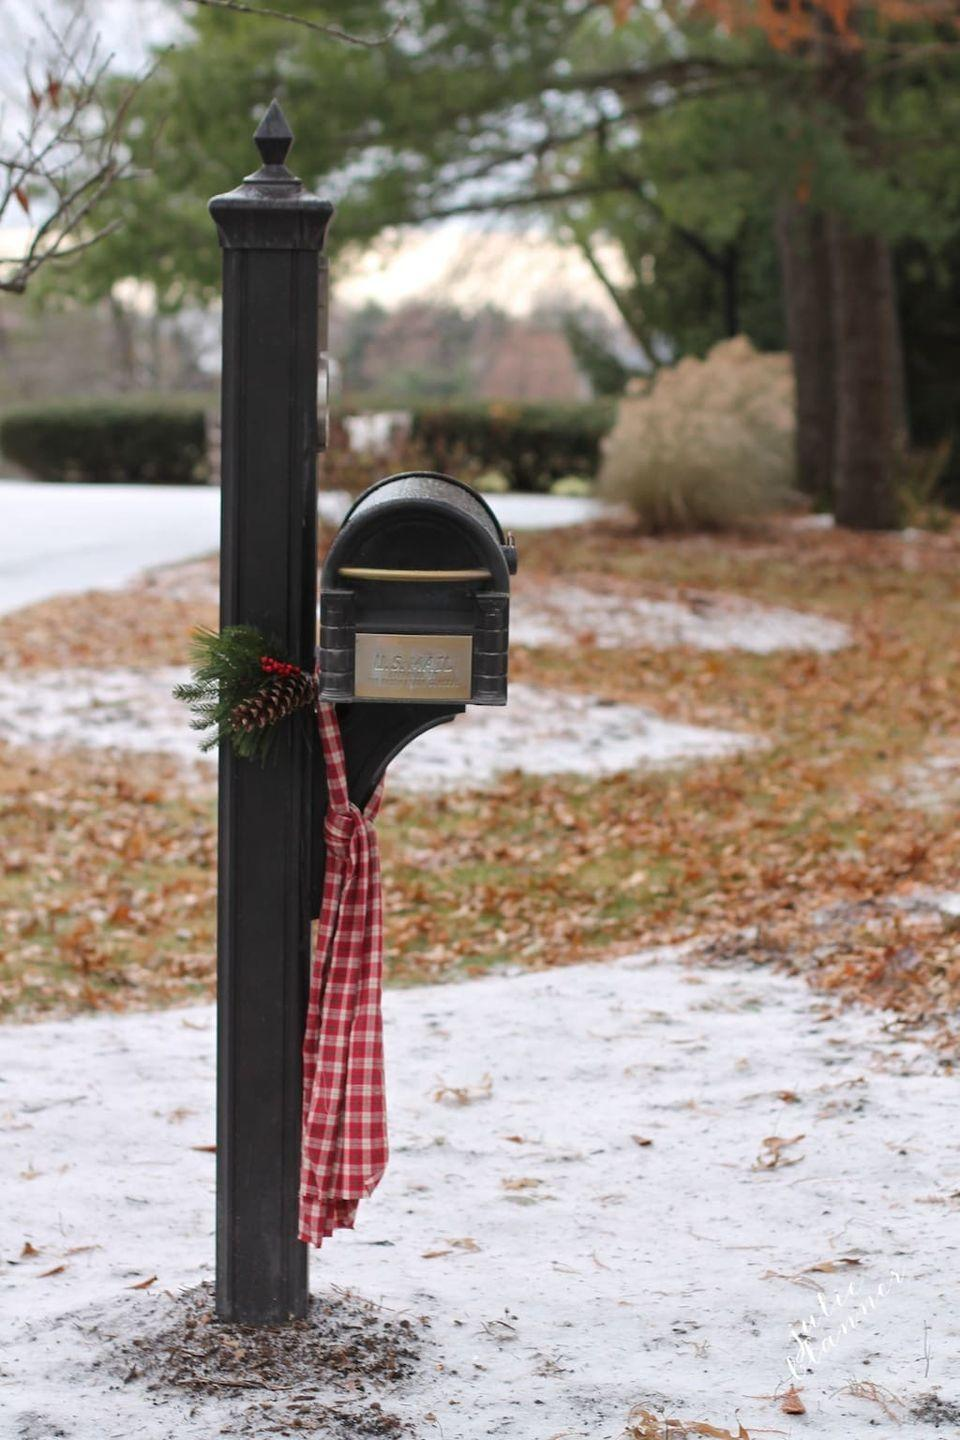 "<p>A little hint of Christmas can go a long way when decorating your mailbox—and you probably have everything you need for this project.</p><p><strong>Get the tutorial at <a href=""https://julieblanner.com/christmas-mailbox/"" rel=""nofollow noopener"" target=""_blank"" data-ylk=""slk:Julie Blanner"" class=""link rapid-noclick-resp"">Julie Blanner</a>.</strong></p><p><a class=""link rapid-noclick-resp"" href=""https://www.amazon.com/Floral-Accessory-Perfect-Bouquet-Wrapping/dp/B086WZ81FR/ref=asc_df_B086WZ81FR/?tag=syn-yahoo-20&ascsubtag=%5Bartid%7C10050.g.33605249%5Bsrc%7Cyahoo-us"" rel=""nofollow noopener"" target=""_blank"" data-ylk=""slk:SHOP FLORAL WIRE"">SHOP FLORAL WIRE</a><br></p>"